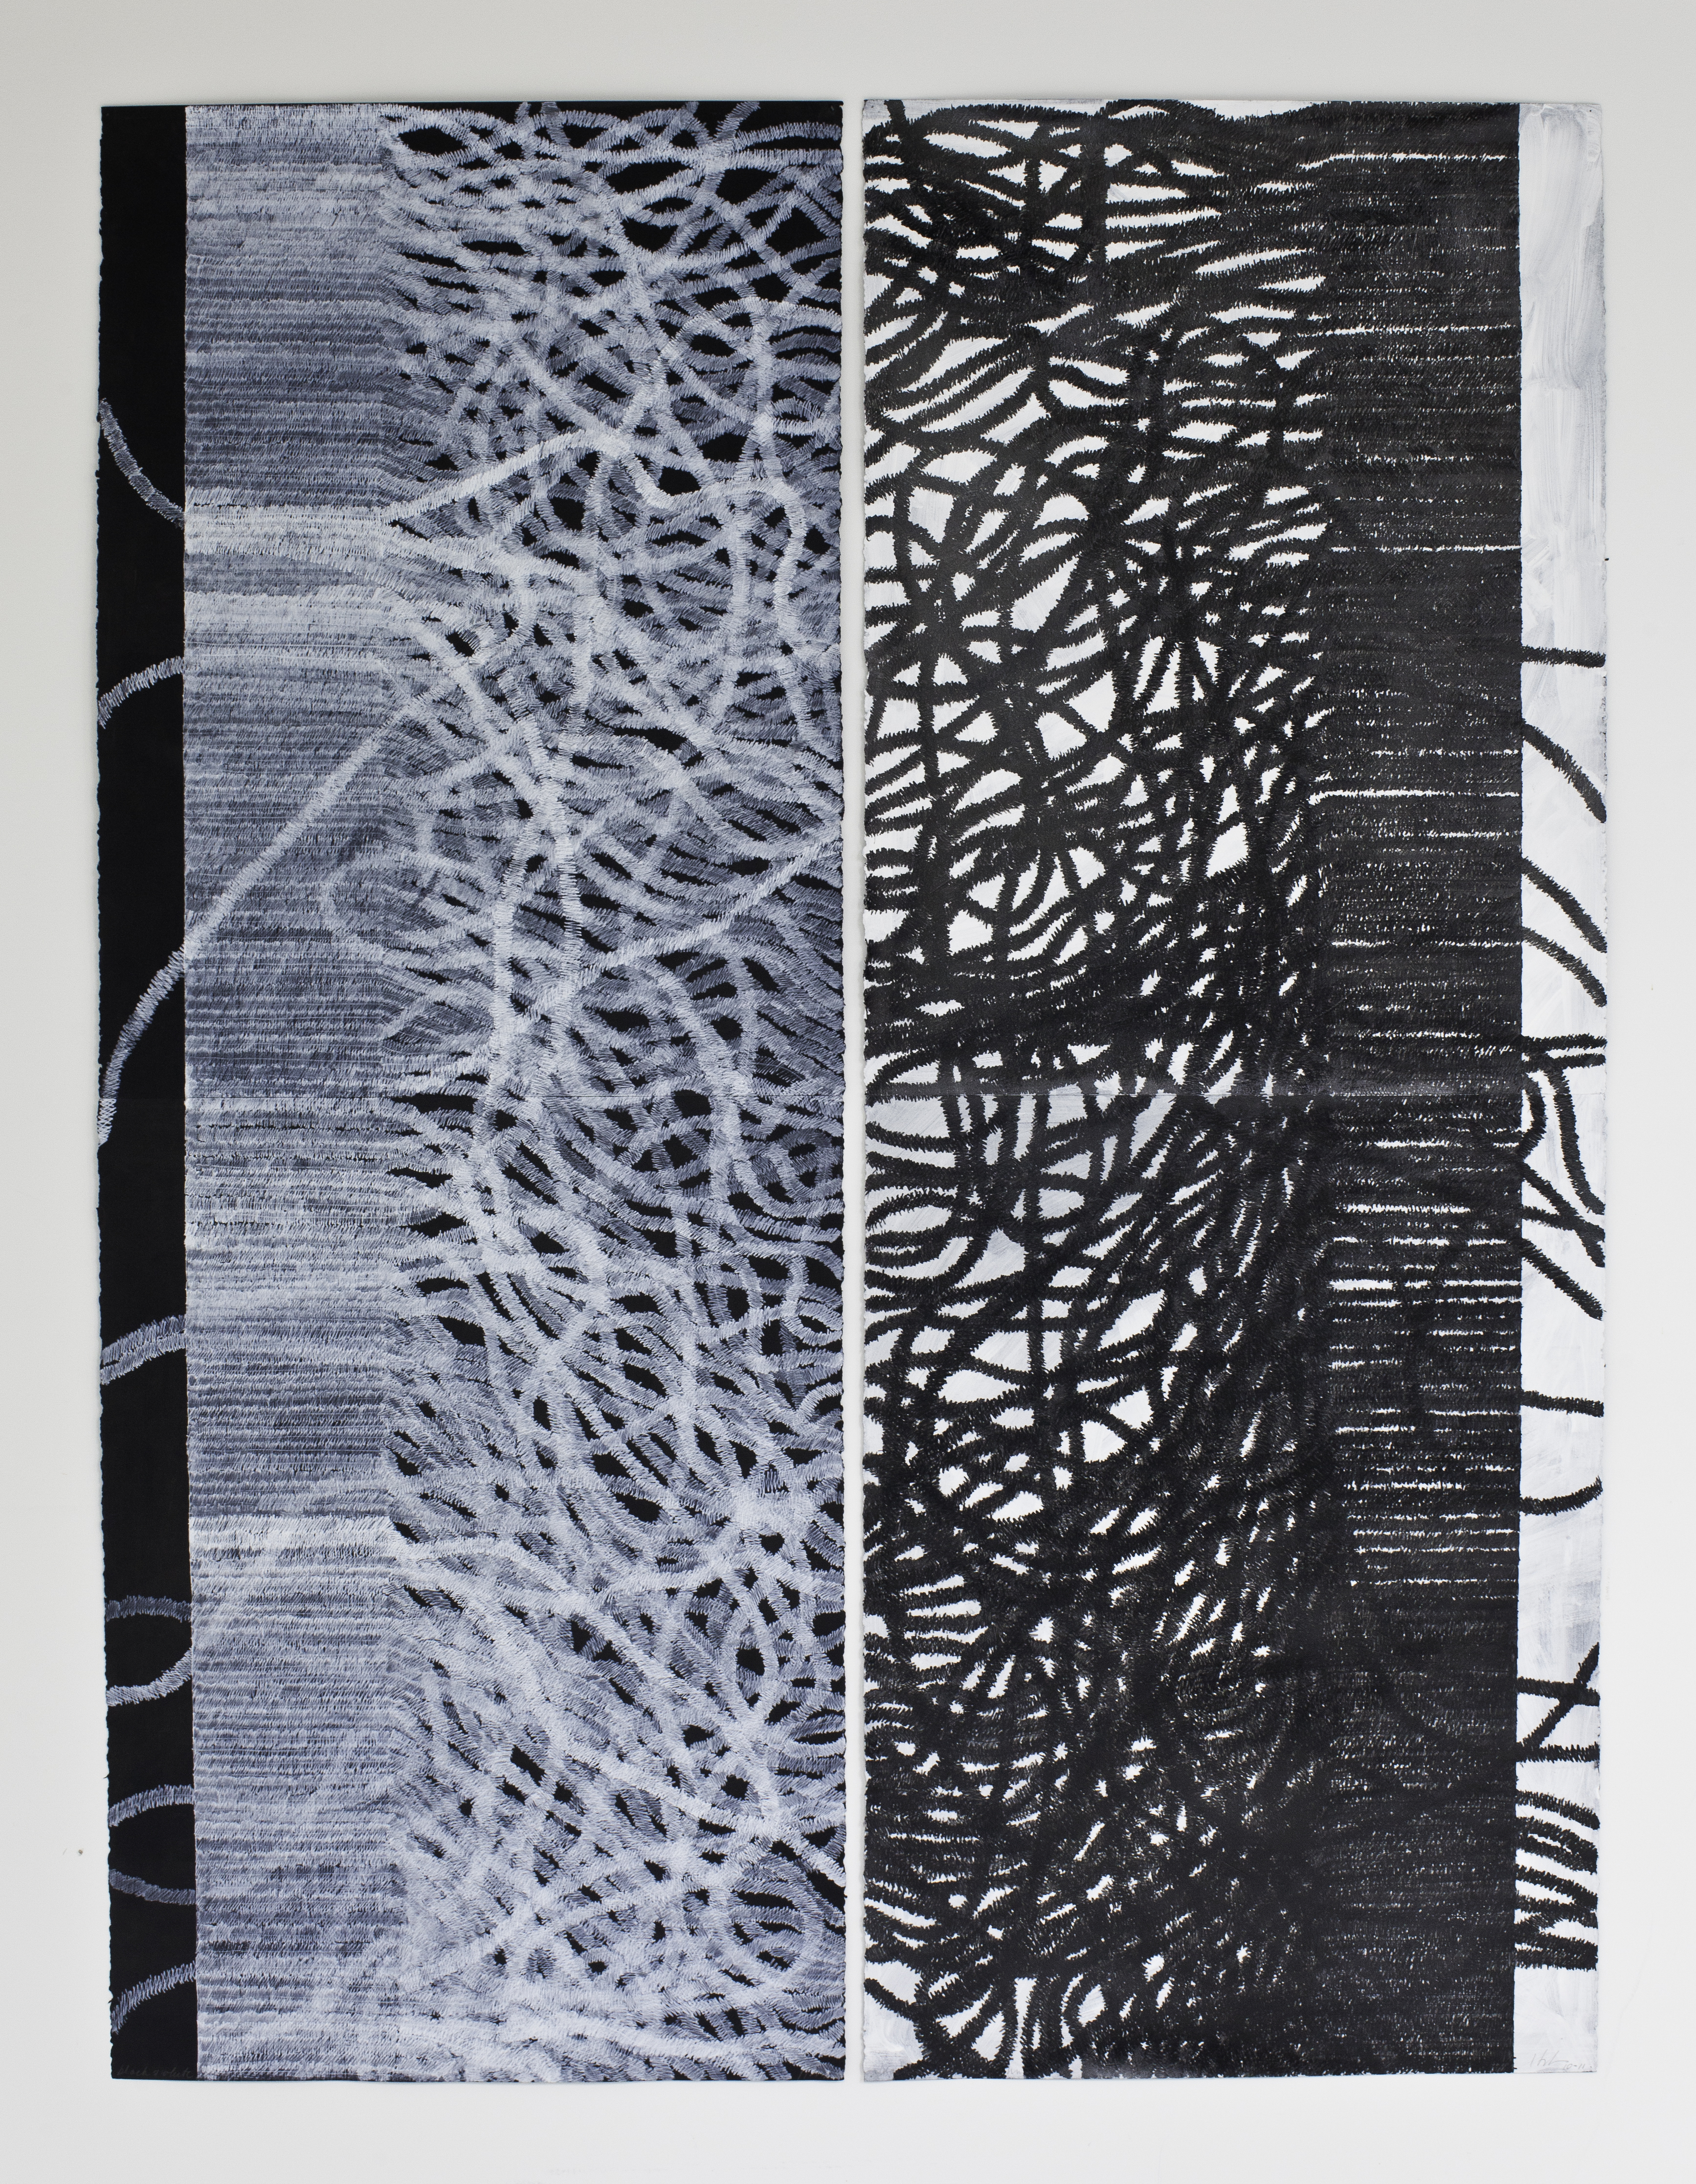 Lyn Horton, copyright, Black & White Things, 2011, 60 inches x 44 inches, ink on gouache on black paper hires